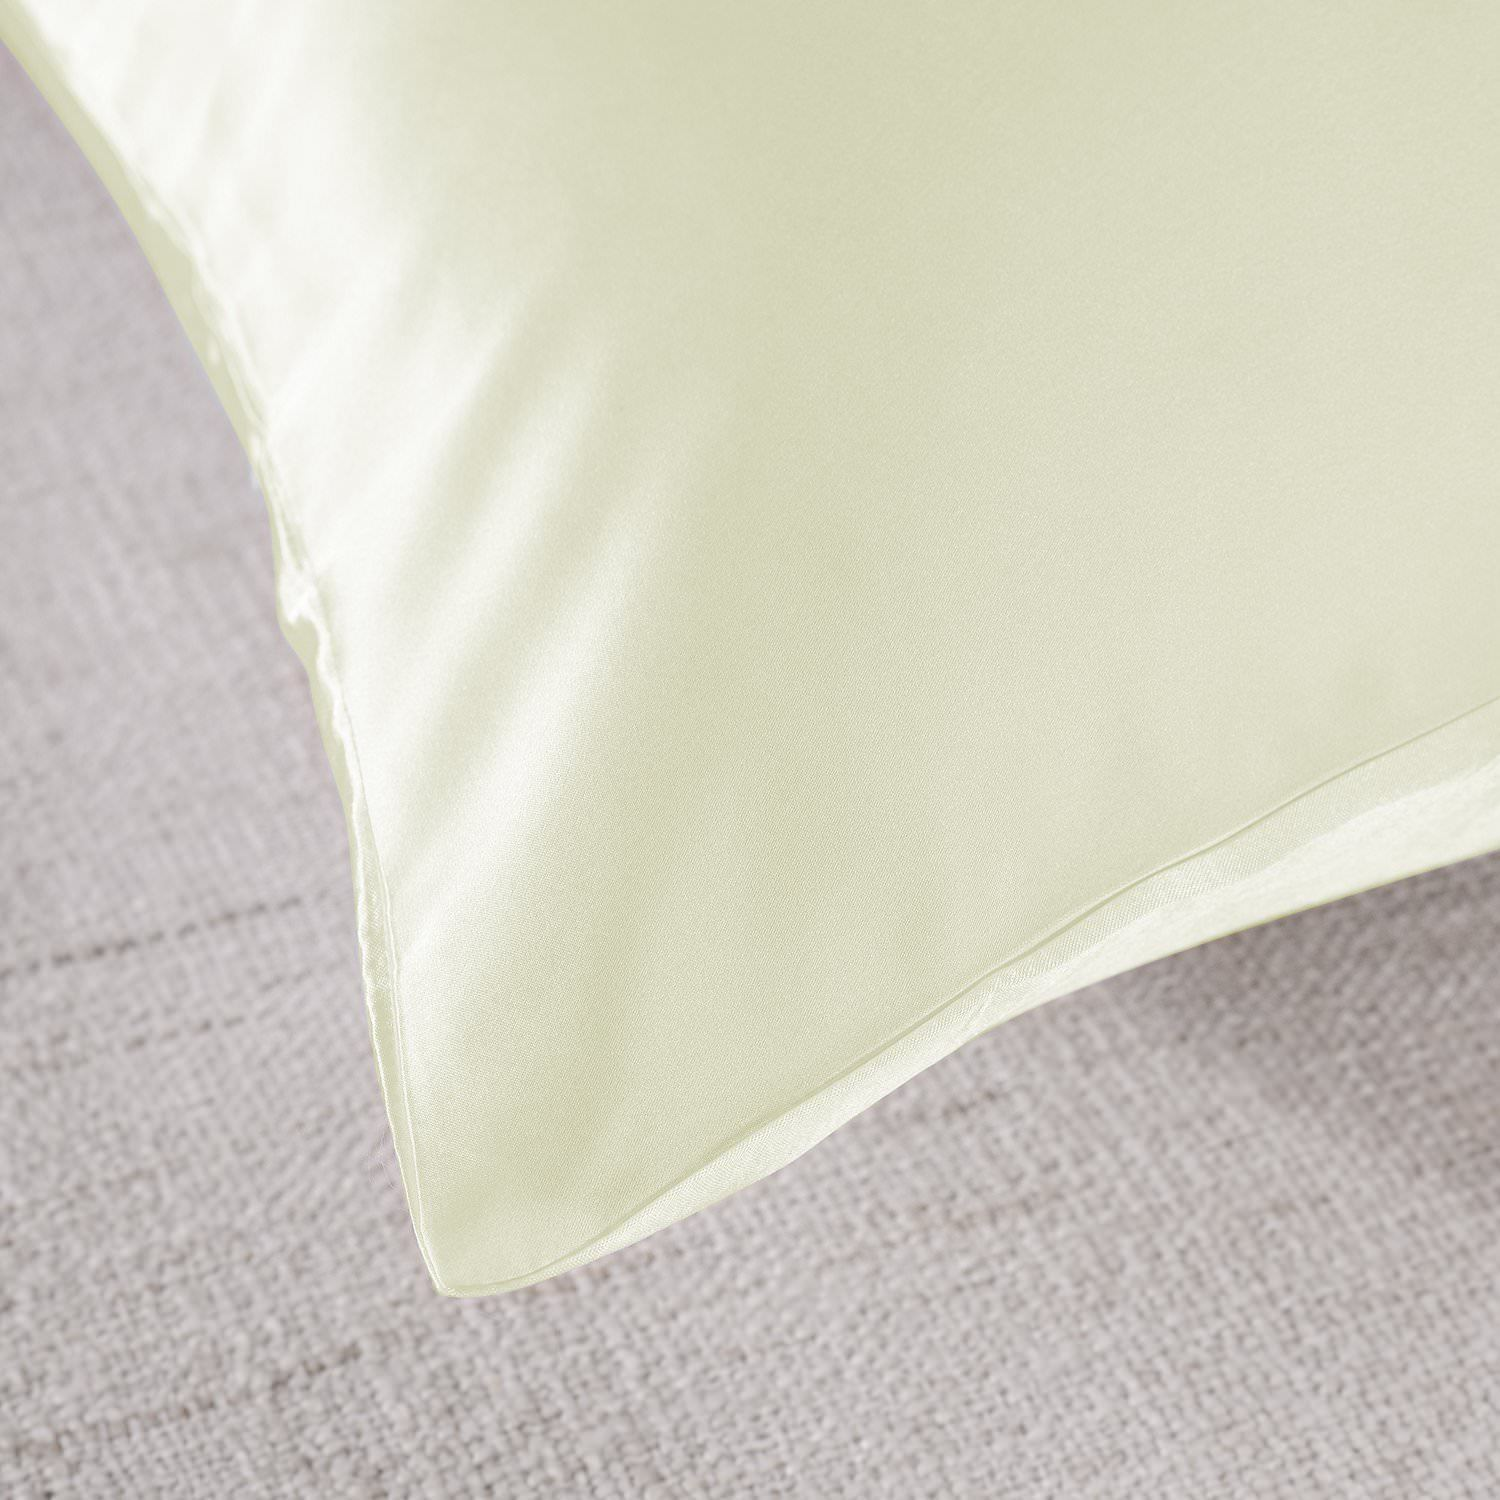 Royal-Comfort-Mulberry-Soft-Silk-Hypoallergenic-Pillowcase-Twin-Pack-51-x-76cm